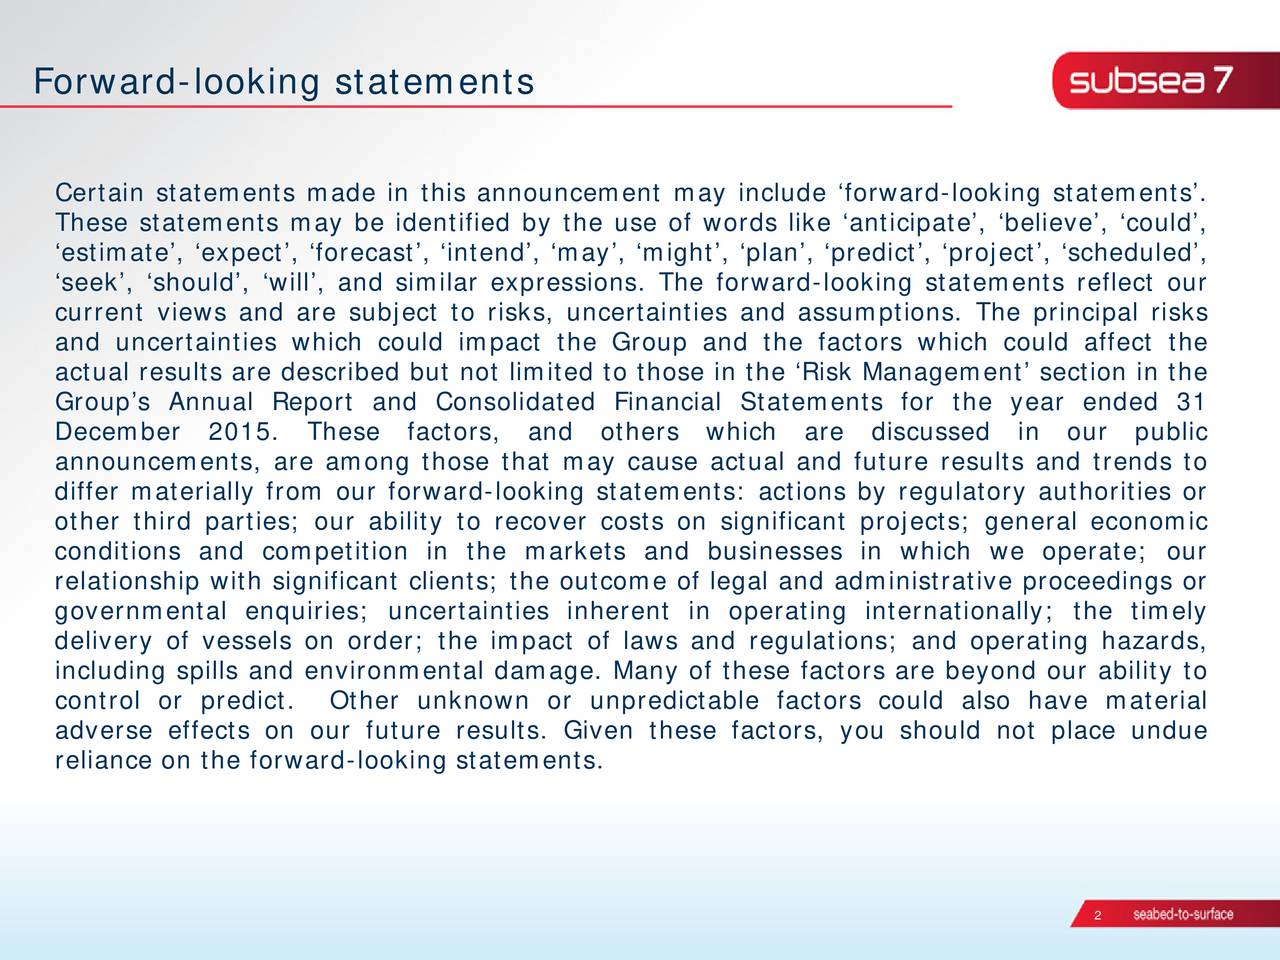 Certain statements made in this announcement may include forward-looking statements. These statements may be identified by the use of words like anticipate, believe, could, estimate, expect, forecast, intend, may, might, plan, predict, project, scheduled, seek, should, will, and similar expressions. The forward-looking statements reflect our current views and are subject to risks, uncertainties and assumptions. The principal risks and uncertainties which could impact the Group and the factors which could affect the actual results are described but not limited to those in the Risk Management section in the Groups Annual Report and Consolidated Financial Statements for the year ended 31 December 2015. These factors, and others which are discussed in our public announcements, are among those that may cause actual and future results and trends to differ materially from our forward-looking statements: actions by regulatory authorities or other third parties; our ability to recover costs on significant projects; general economic conditions and competition in the markets and businesses in which we operate; our relationship with significant clients; the outcome of legal and administrative proceedings or governmental enquiries; uncertainties inherent in operating internationally; the timely delivery of vessels on order; the impact of laws and regulations; and operating hazards, including spills and environmental damage. Many of these factors are beyond our ability to control or predict. Other unknown or unpredictable factors could also have material adverse effects on our future results. Given these factors, you should not place undue reliance on the forward-looking statements. 2